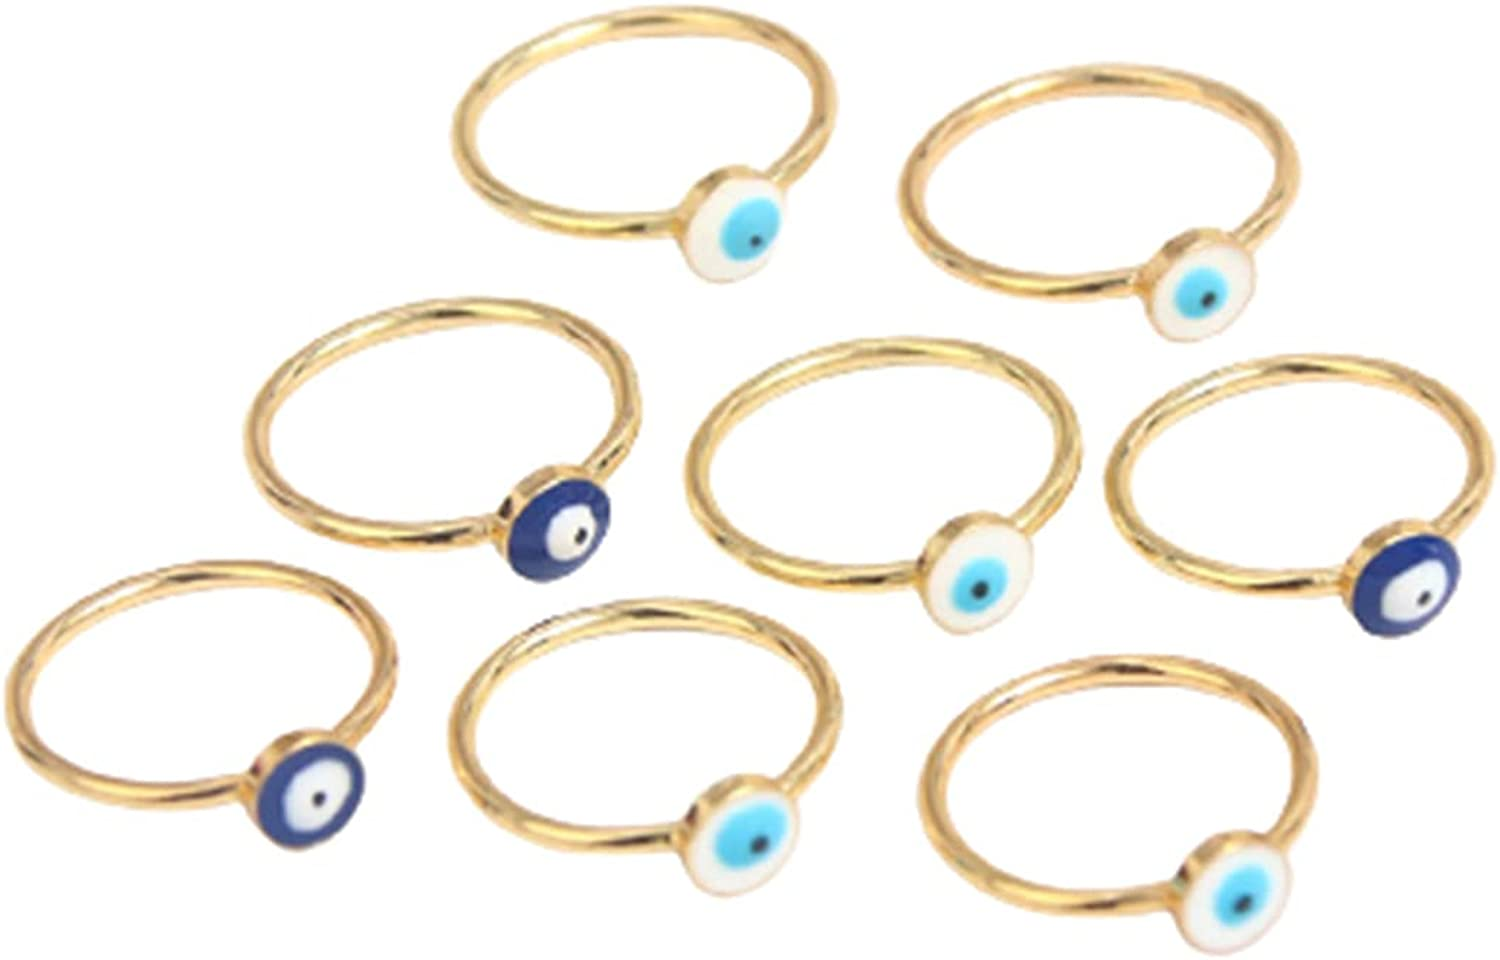 Vintage Boho Evil Eye Rings Gold Plated Enamel Eyes Knuckle Ring Set Friendship Protection Good Luck Finger Ring for Women Girl Party Jewelry